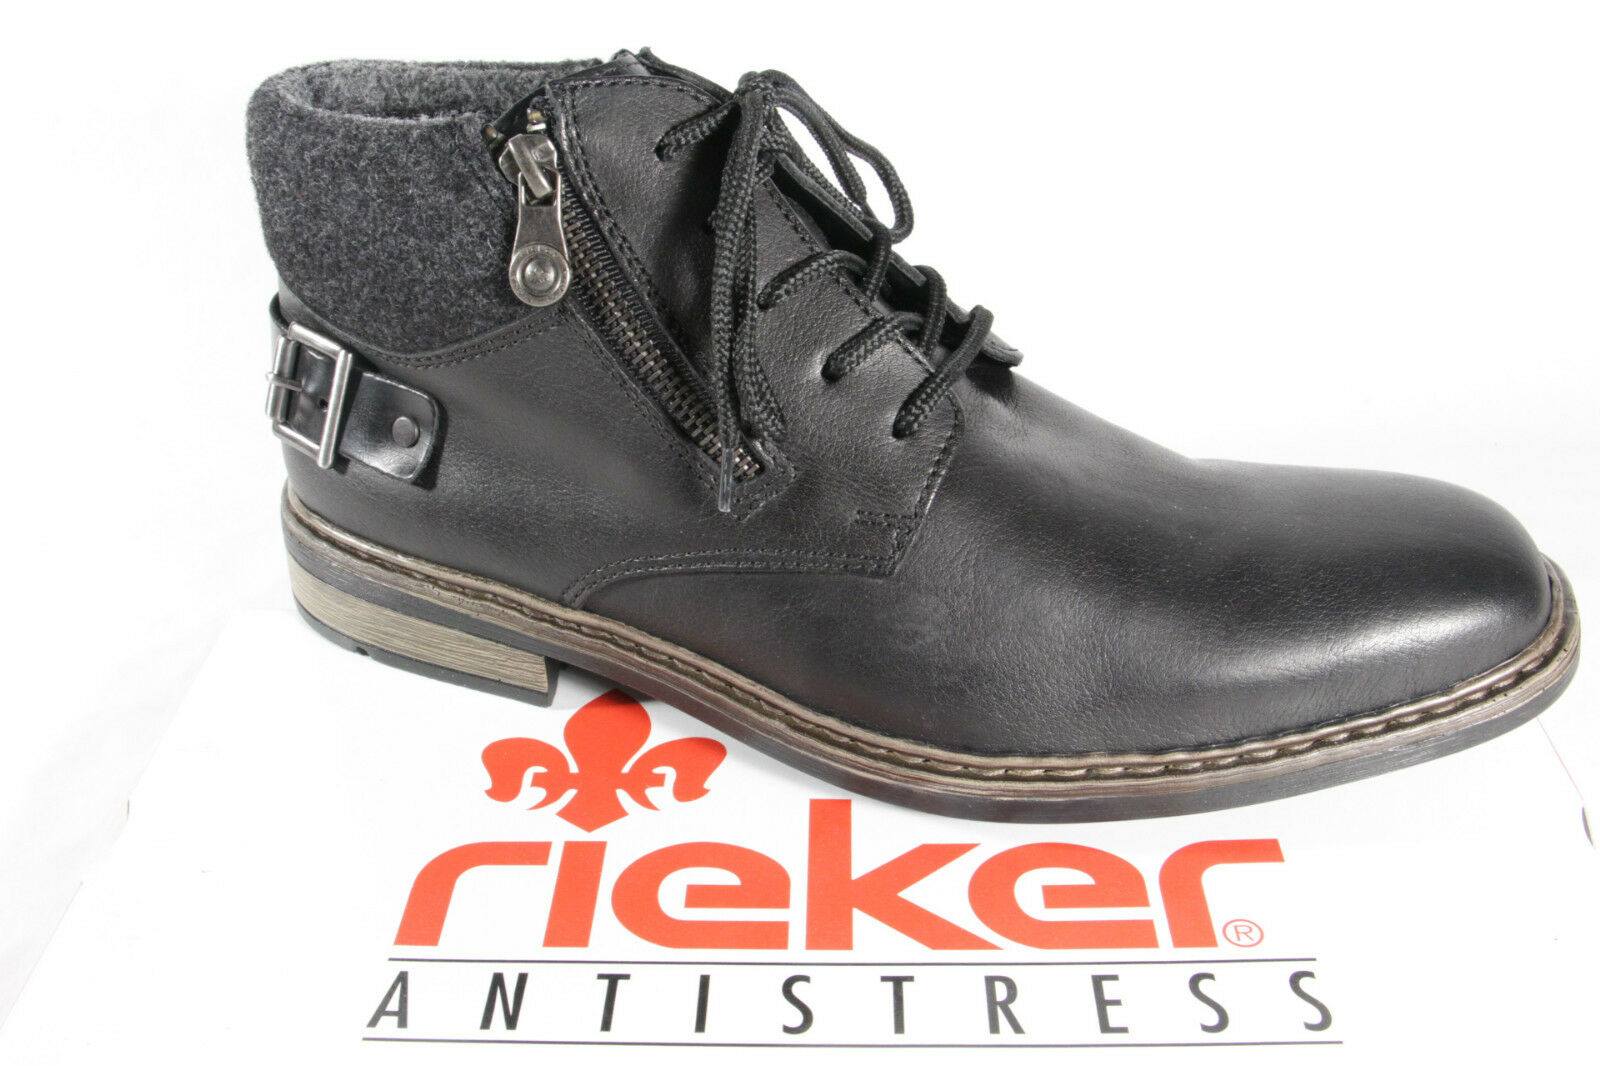 Rieker Men's Boots F1230 Ankle Boots Winter Boots, Black, Leather New